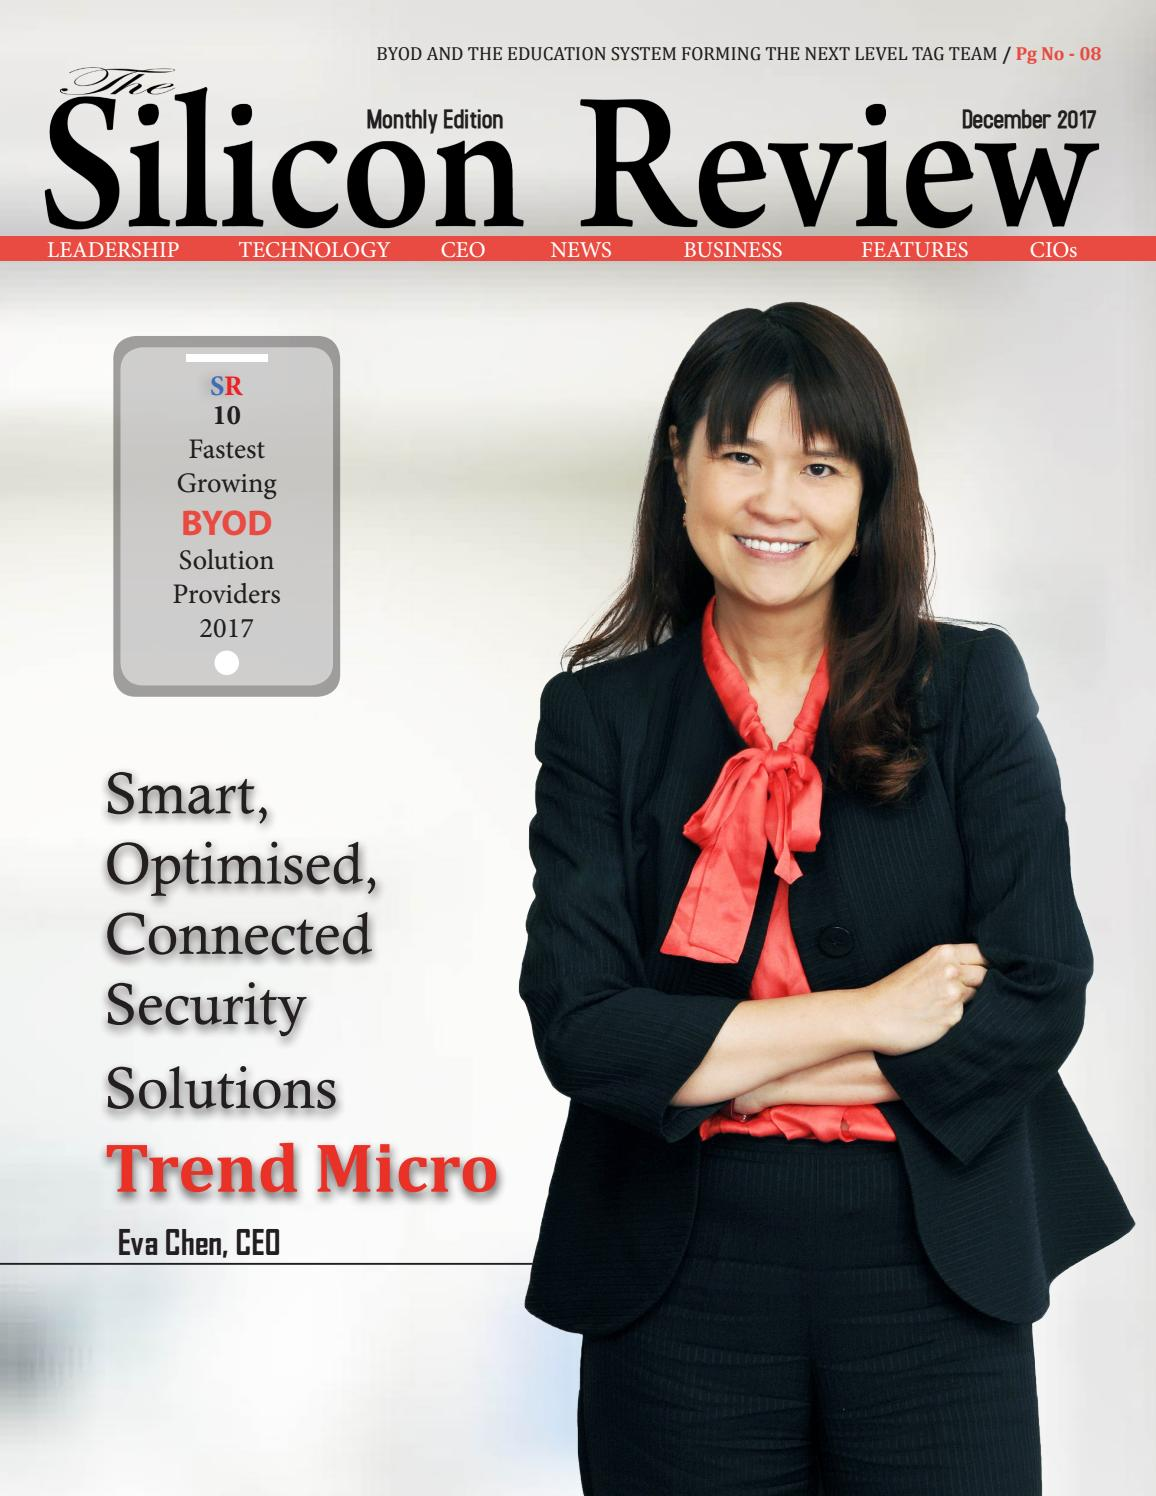 10 Fastest Growing BYOD Solution Providers by The Silicon Review - issuu